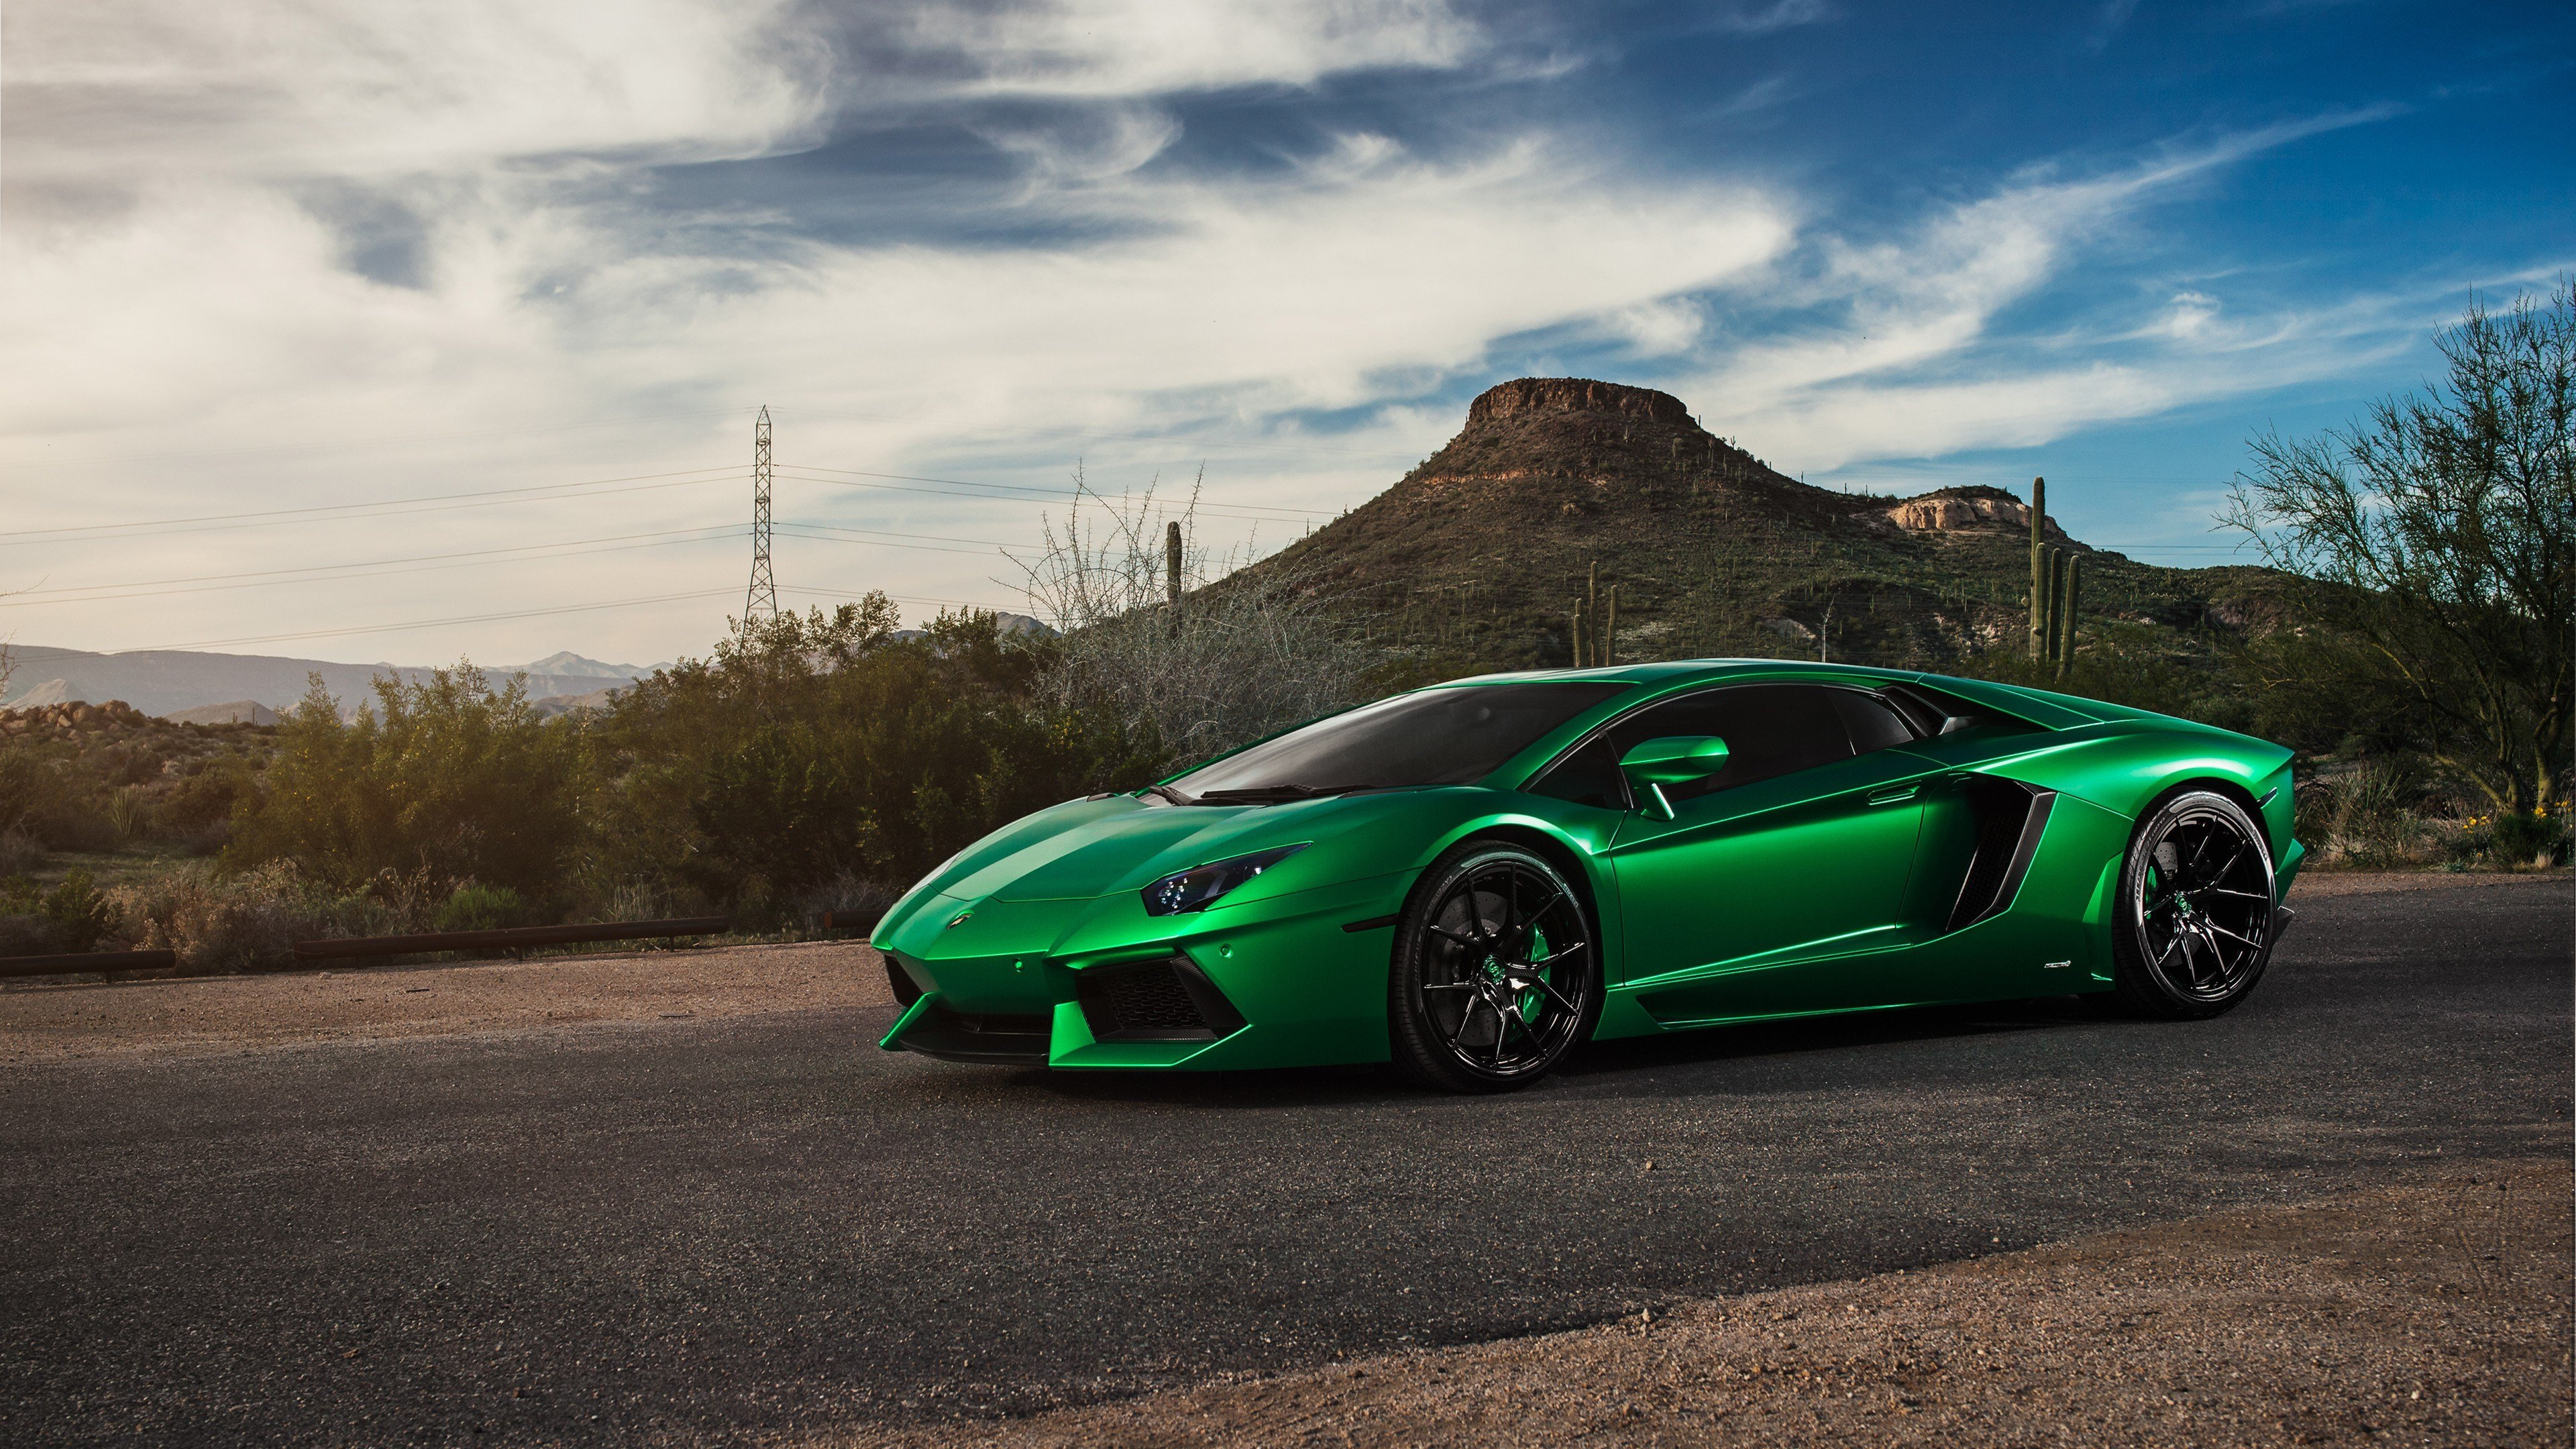 New Lamborghini Aventador Green 4K Hd Cars 4K Wallpapers On This Month